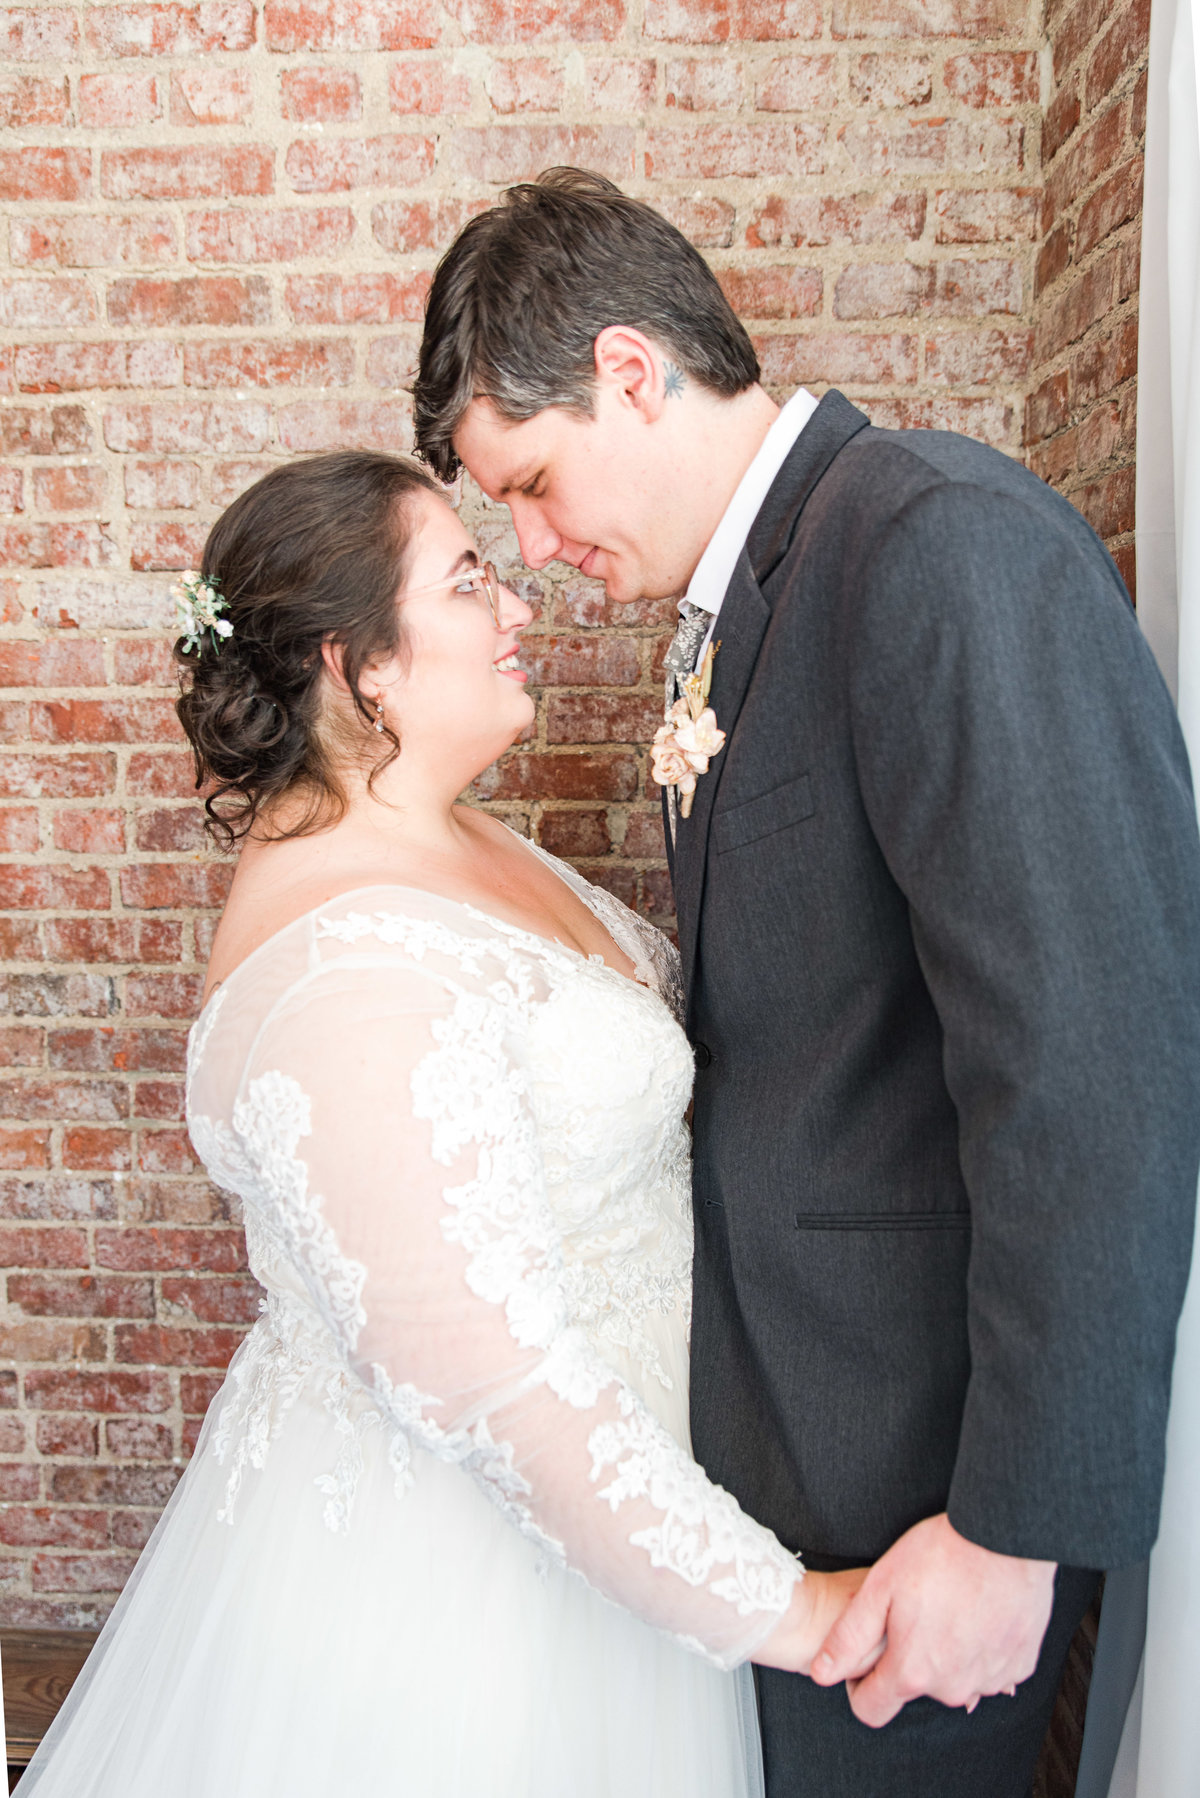 Neidhammer Wedding Photographer Indianapolis Wedding Photographer-5